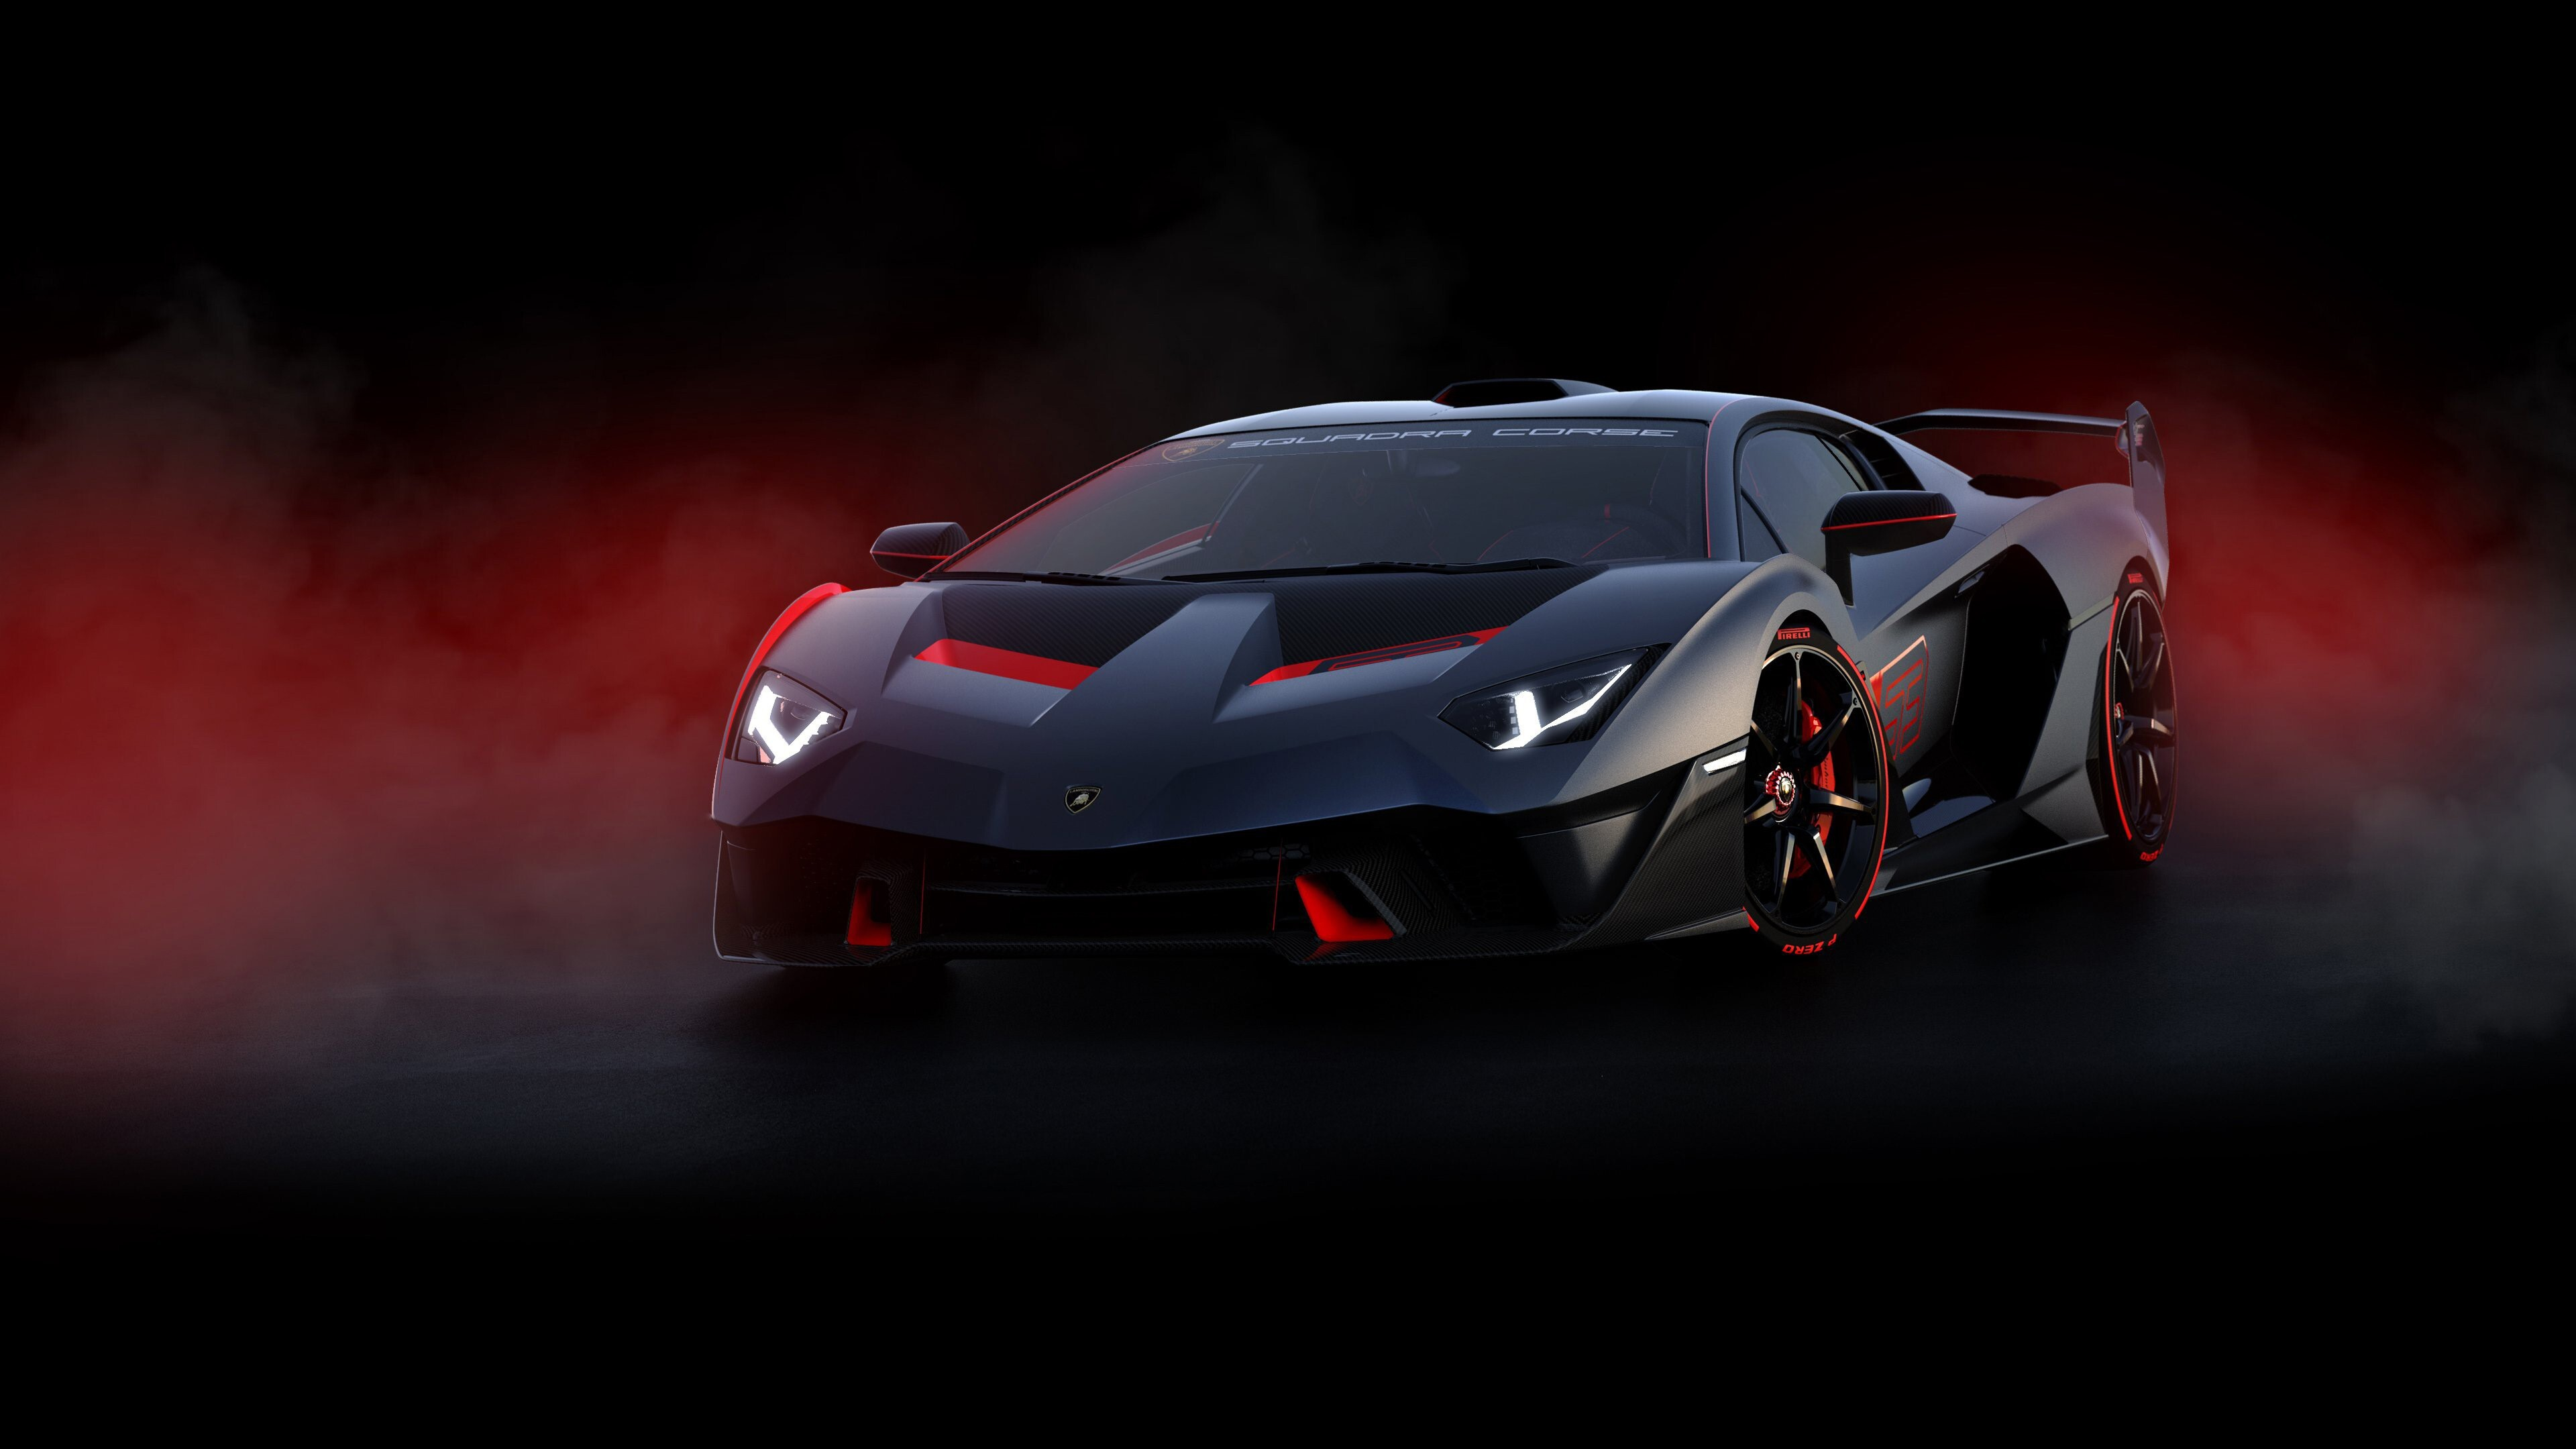 4k Car Wallpaper Of 2019 Lamborghini Sc18 Alston Hd Wallpapers